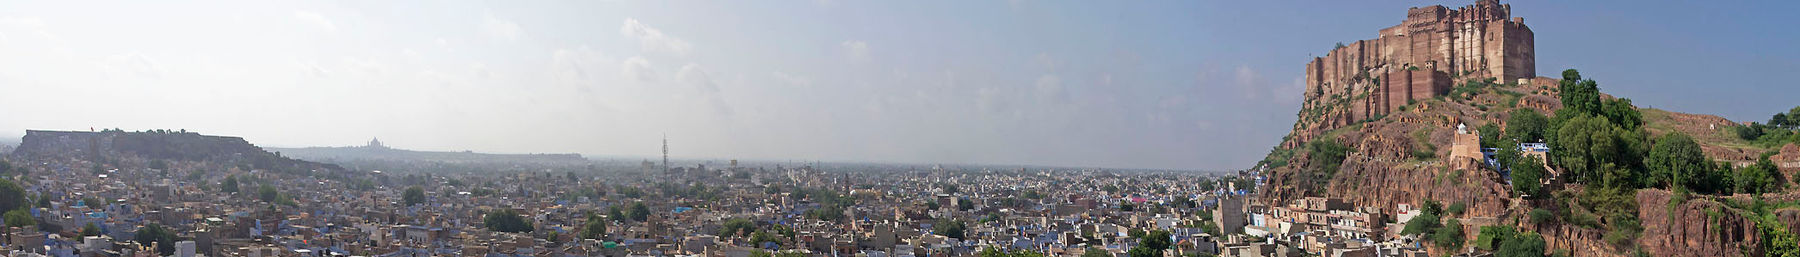 Jodhpur banner Skyline with fort.jpg